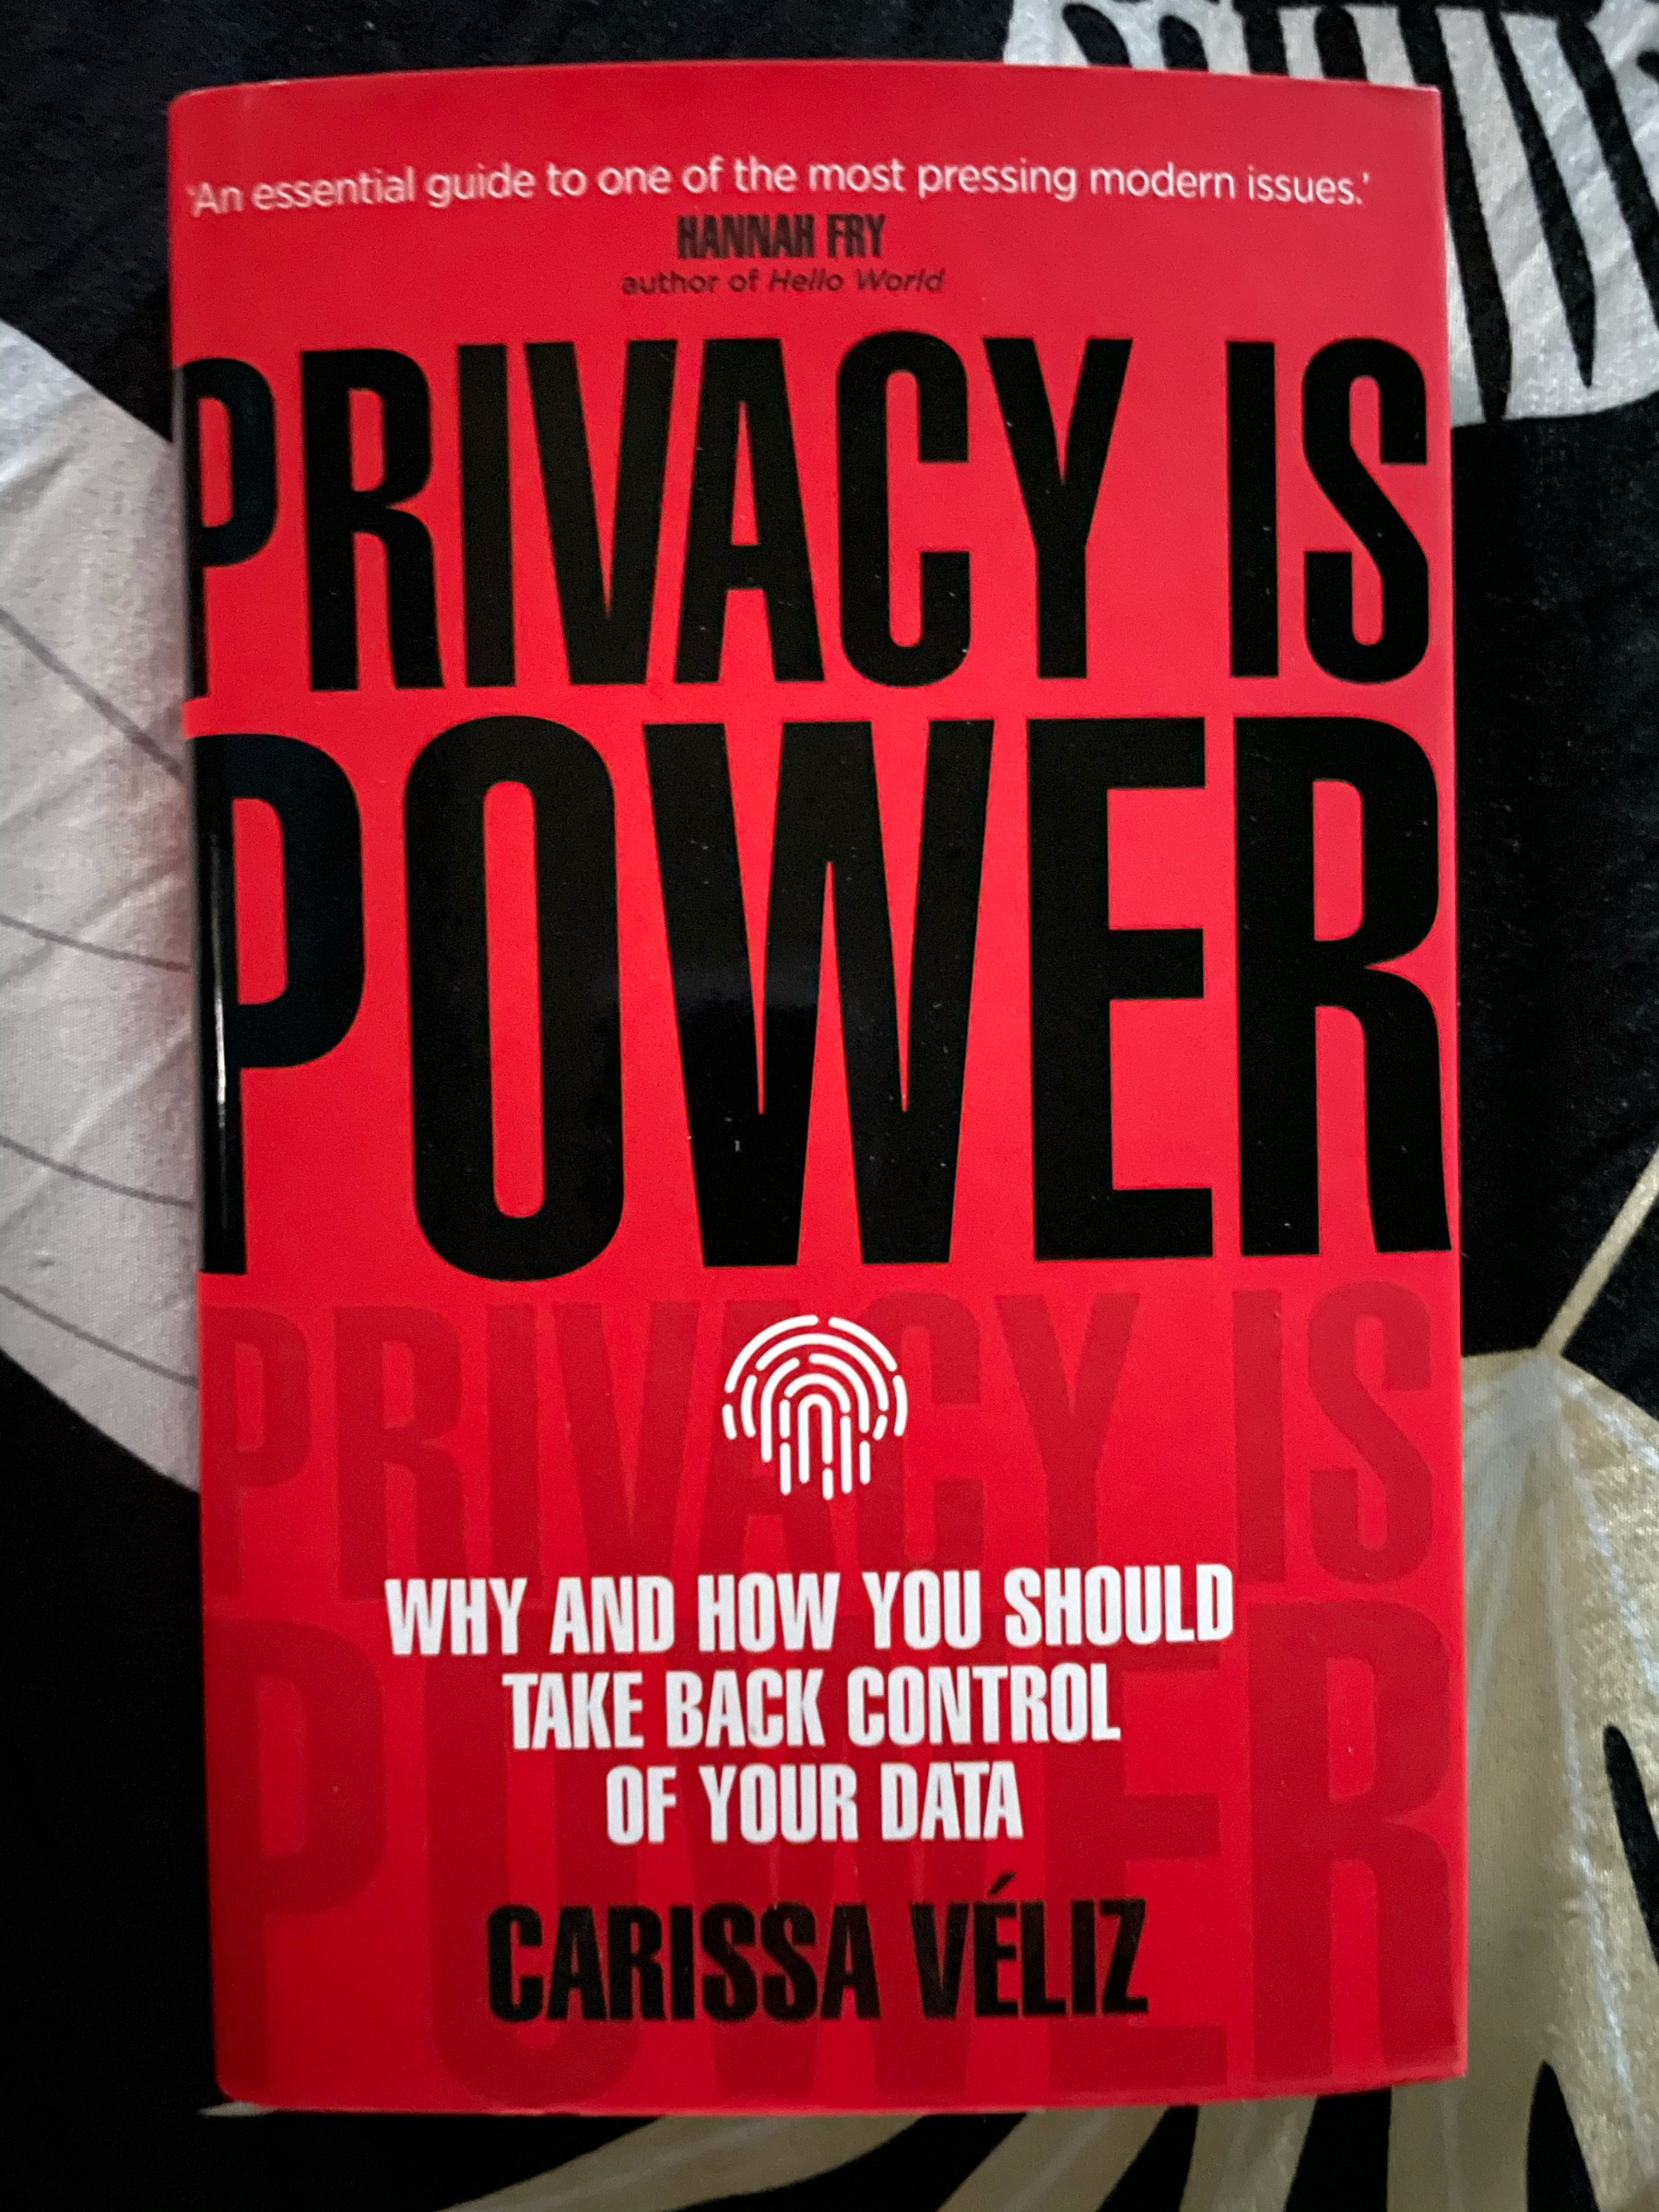 Privacy is Power book